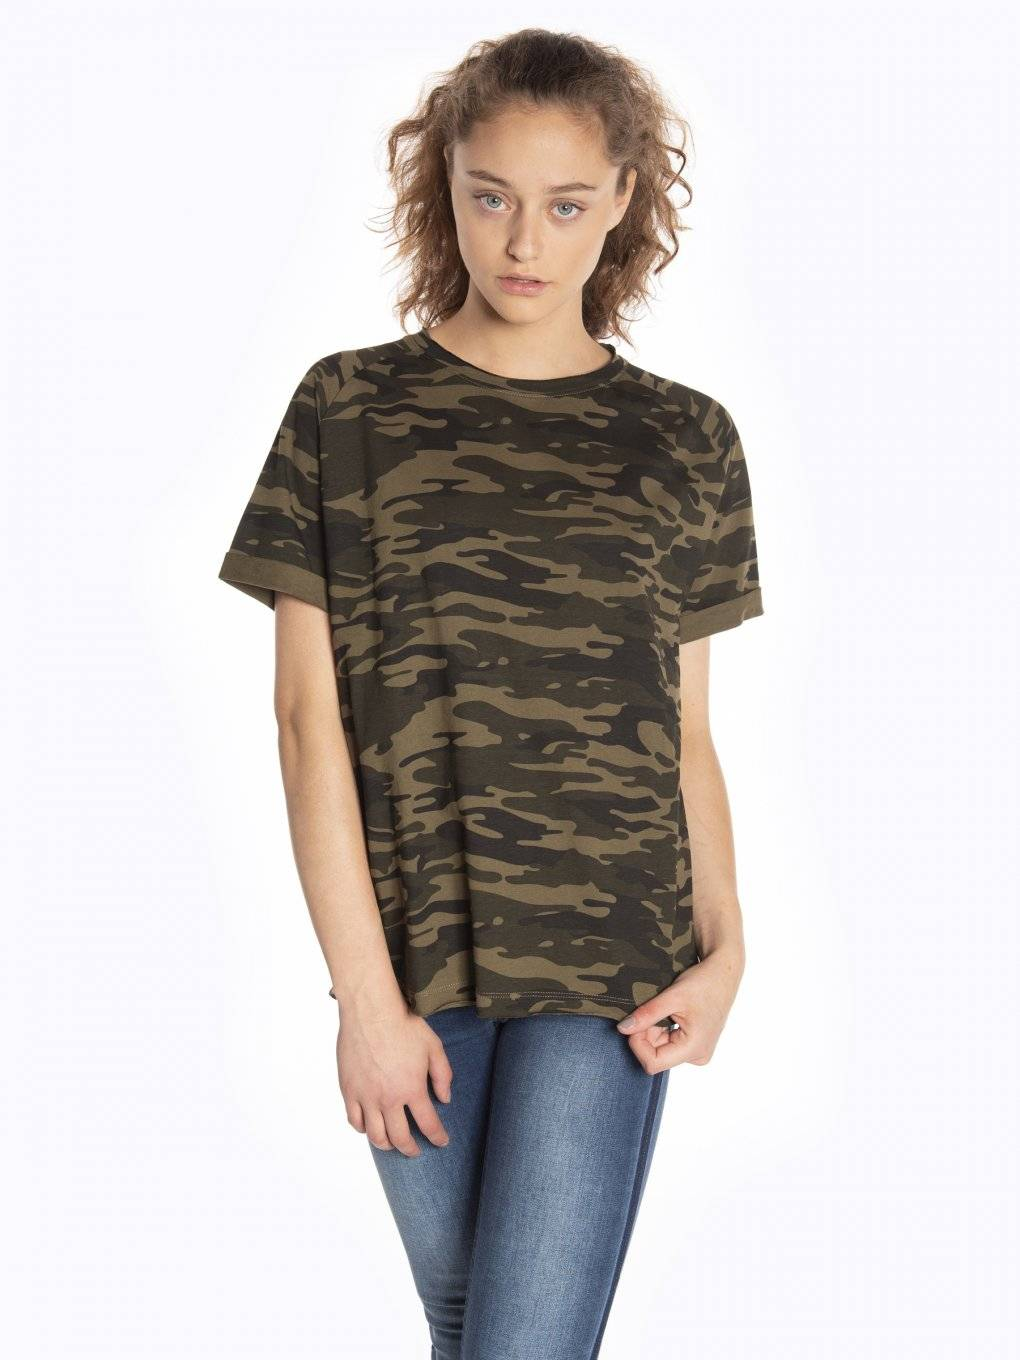 Camo print short sleeve t-shirt with raw edges